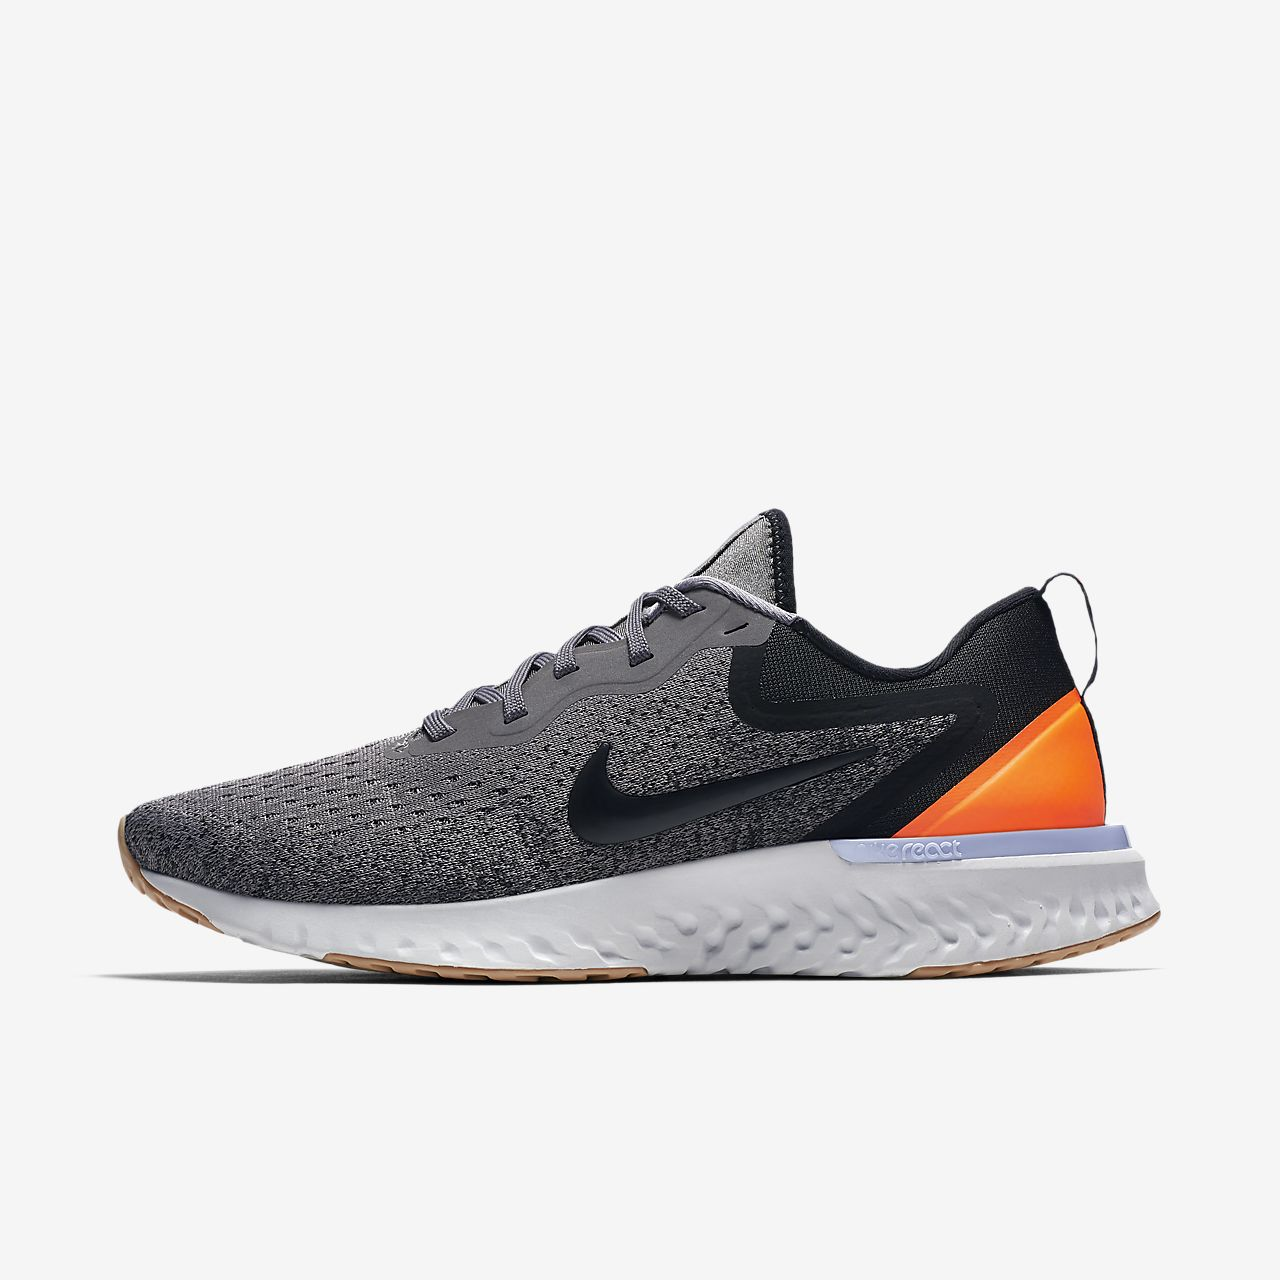 Nike Wmns Odyssey React Gunsmoke/Black-Twilight Pulse Running Shoes AO9820-003